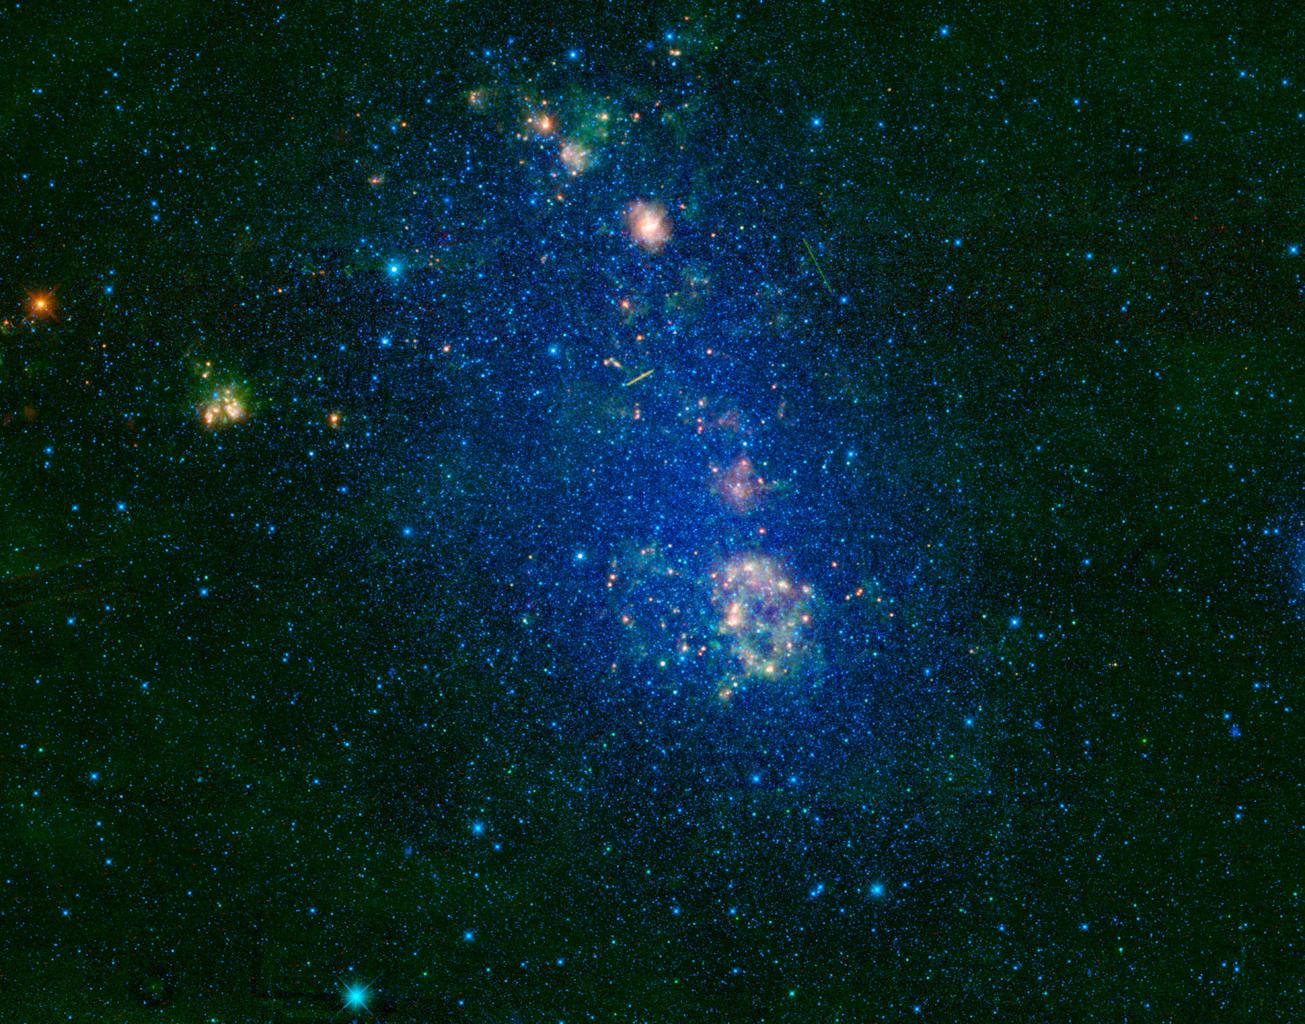 NASA's Wide-field Infrared Survey Explorer highlights the Small Magellanic Cloud, a small galaxy about 200,000 light-years away. Located in the constellation Tucana, the Small Magellanic Cloud looks like a wispy cloud encircling the south celestial pole.